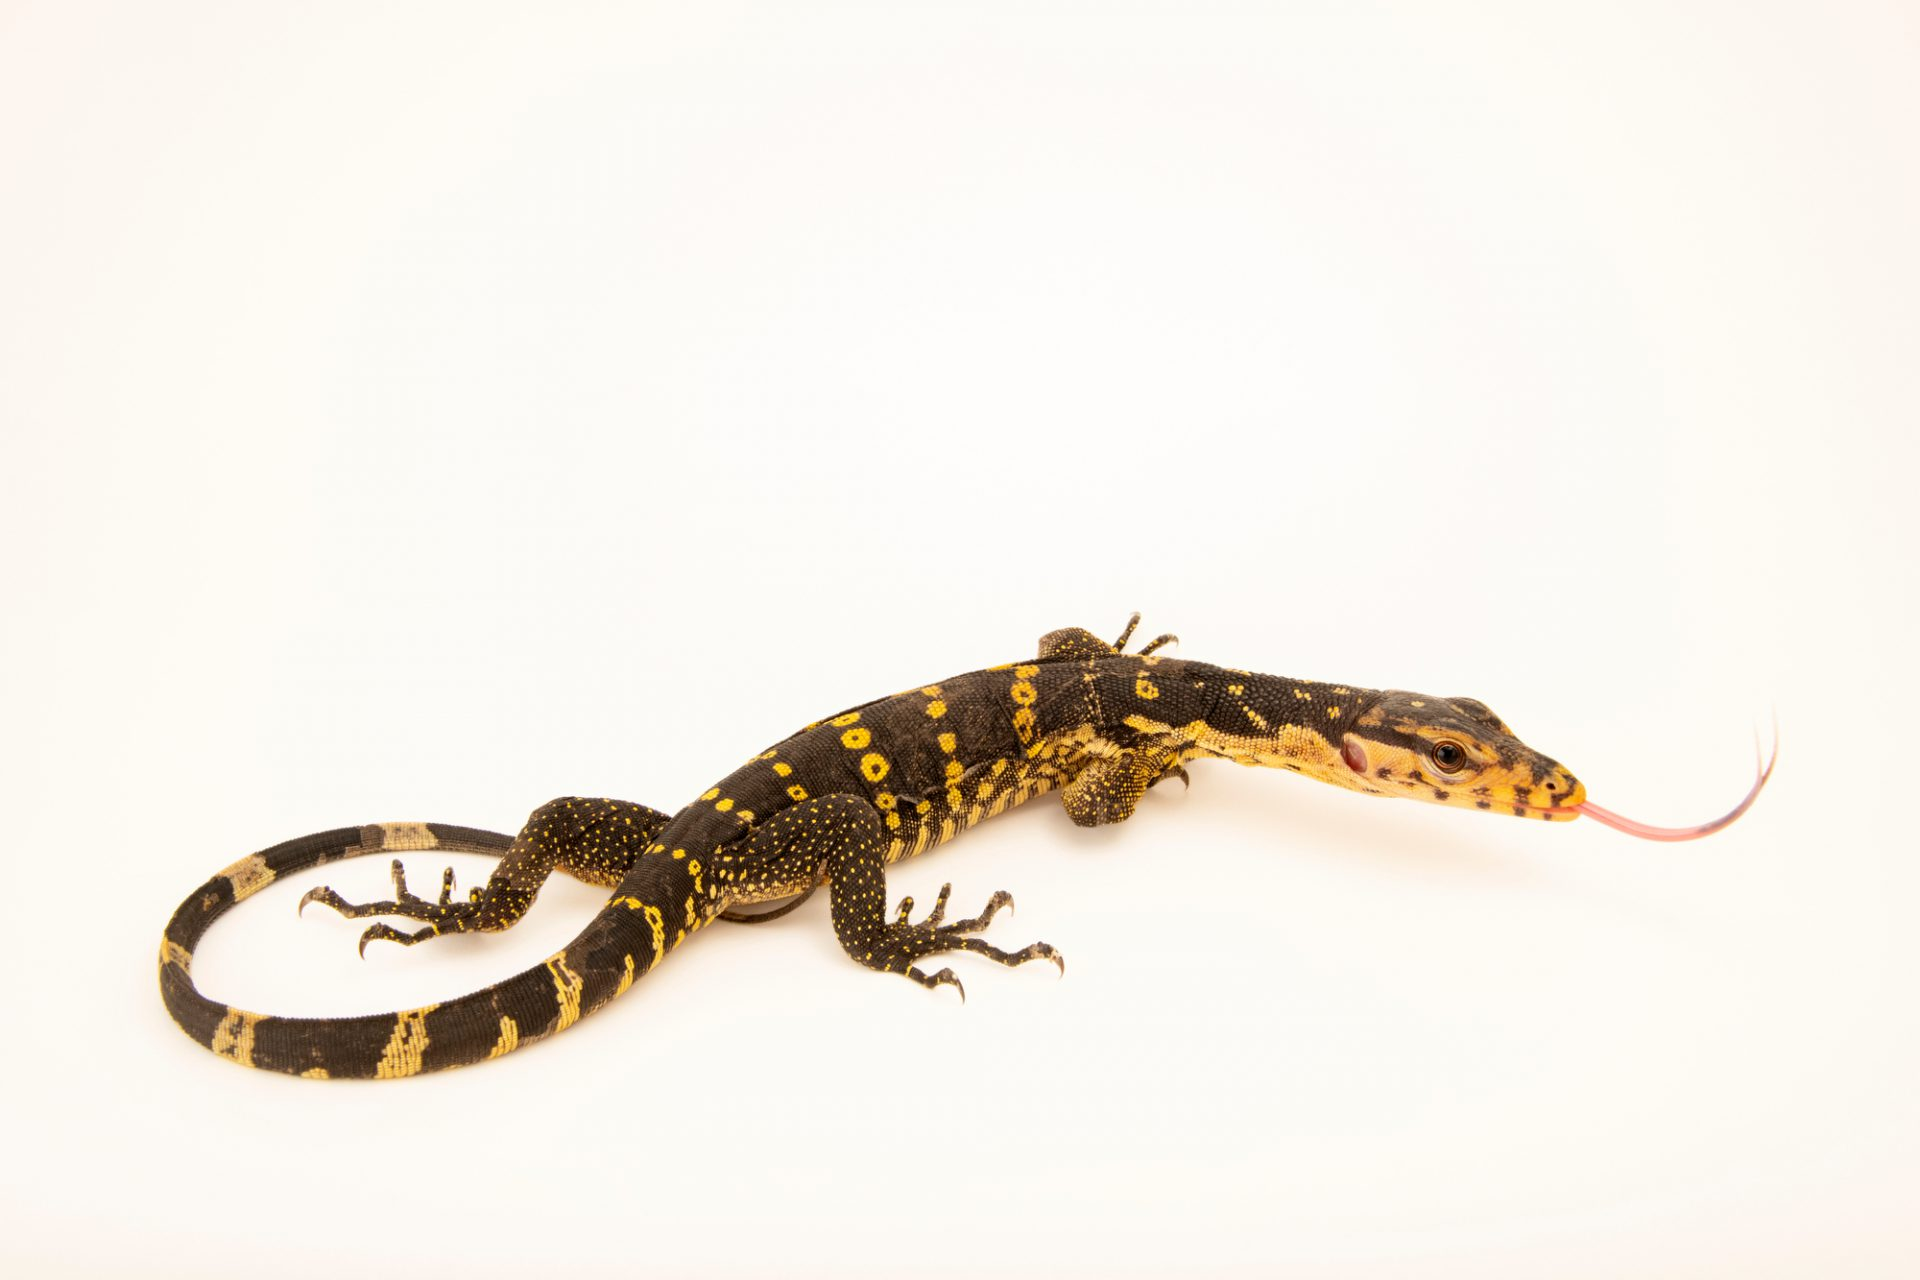 Photo: Samar water monitor (Varanus samarensis) from the private collection in San Antonio.